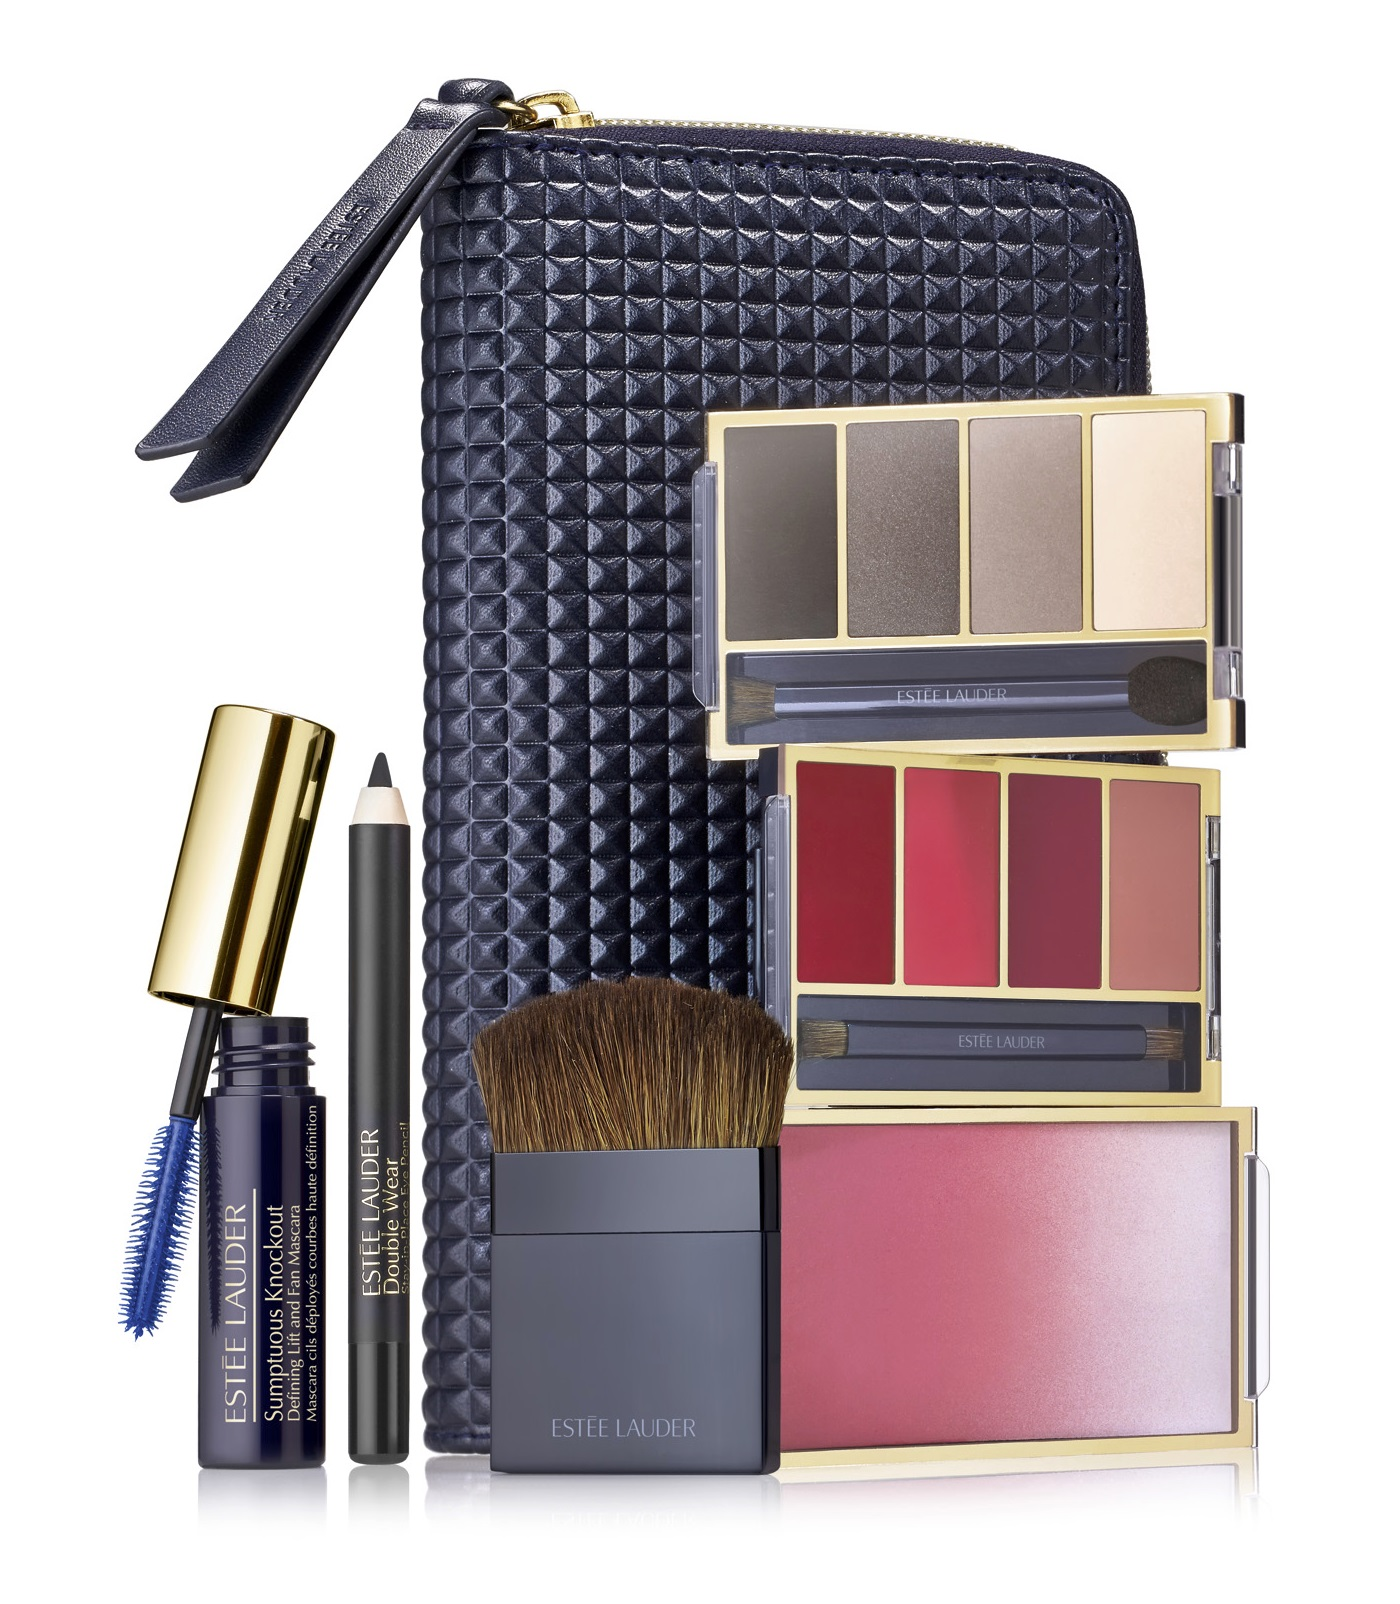 ESTEE LAUDER TRAVEL IN COLOR SET